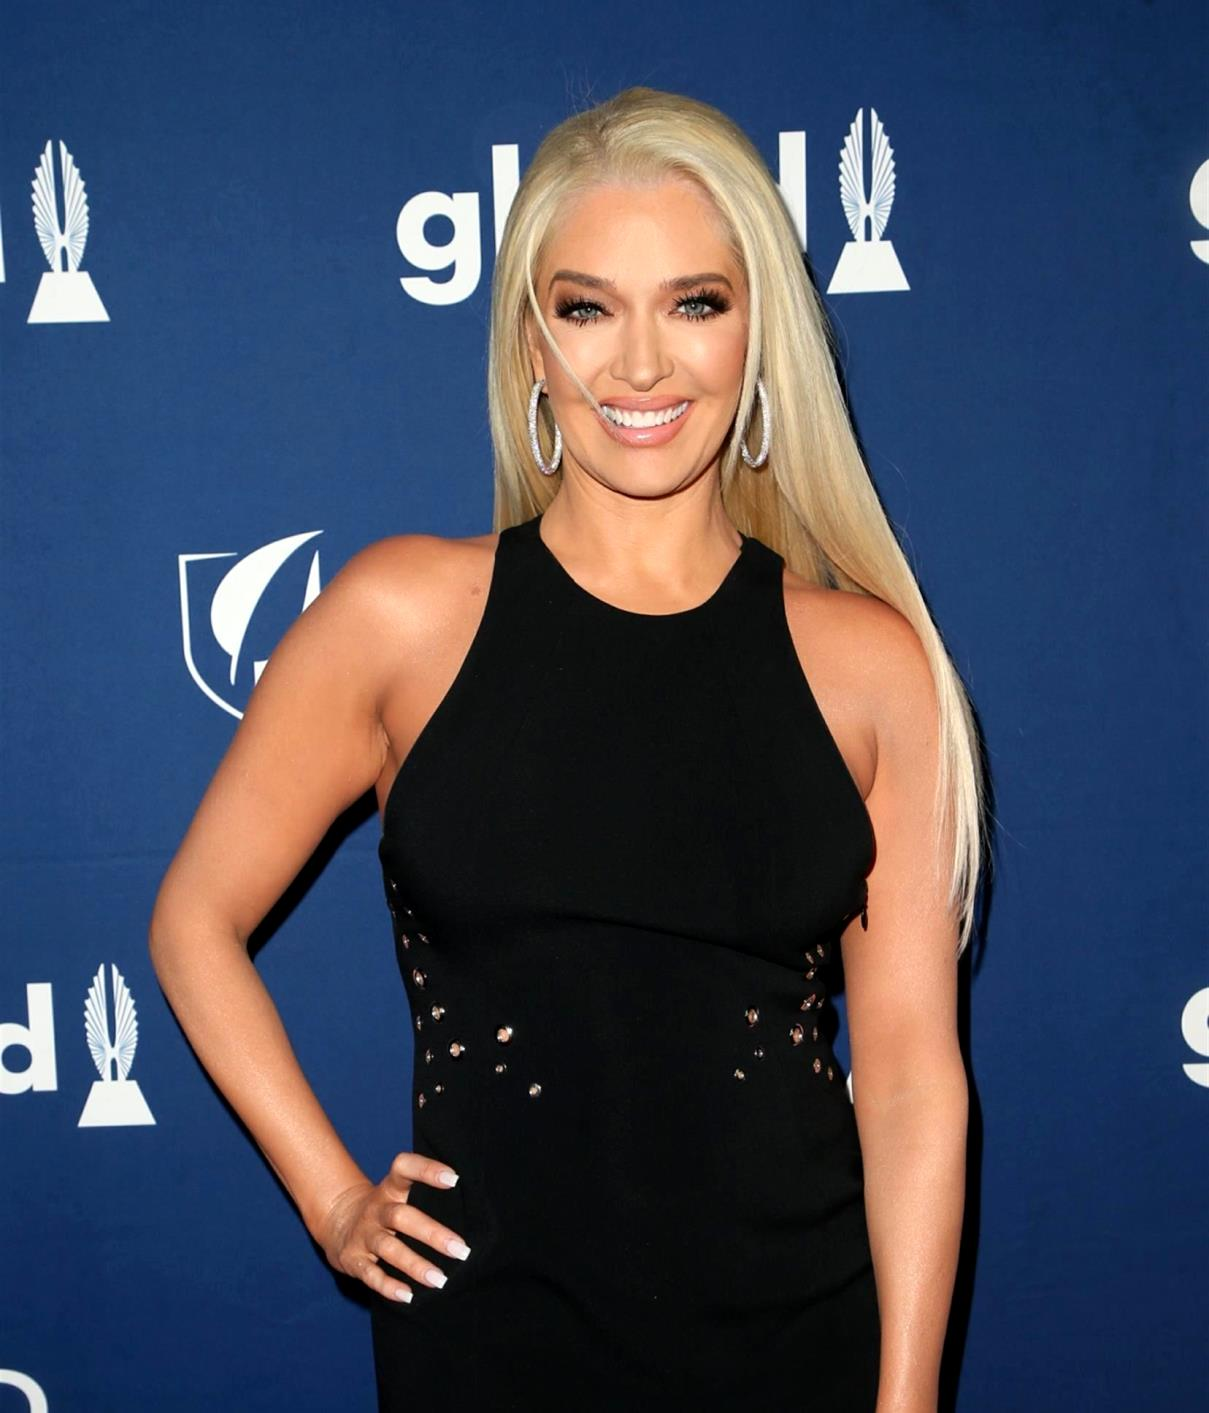 """PHOTOS: RHOBH's Erika Jayne Boards a Private Jet Amid Legal Drama, Claps Back at Fan Who Tells Her to """"Read the Motherf-cking Room"""""""